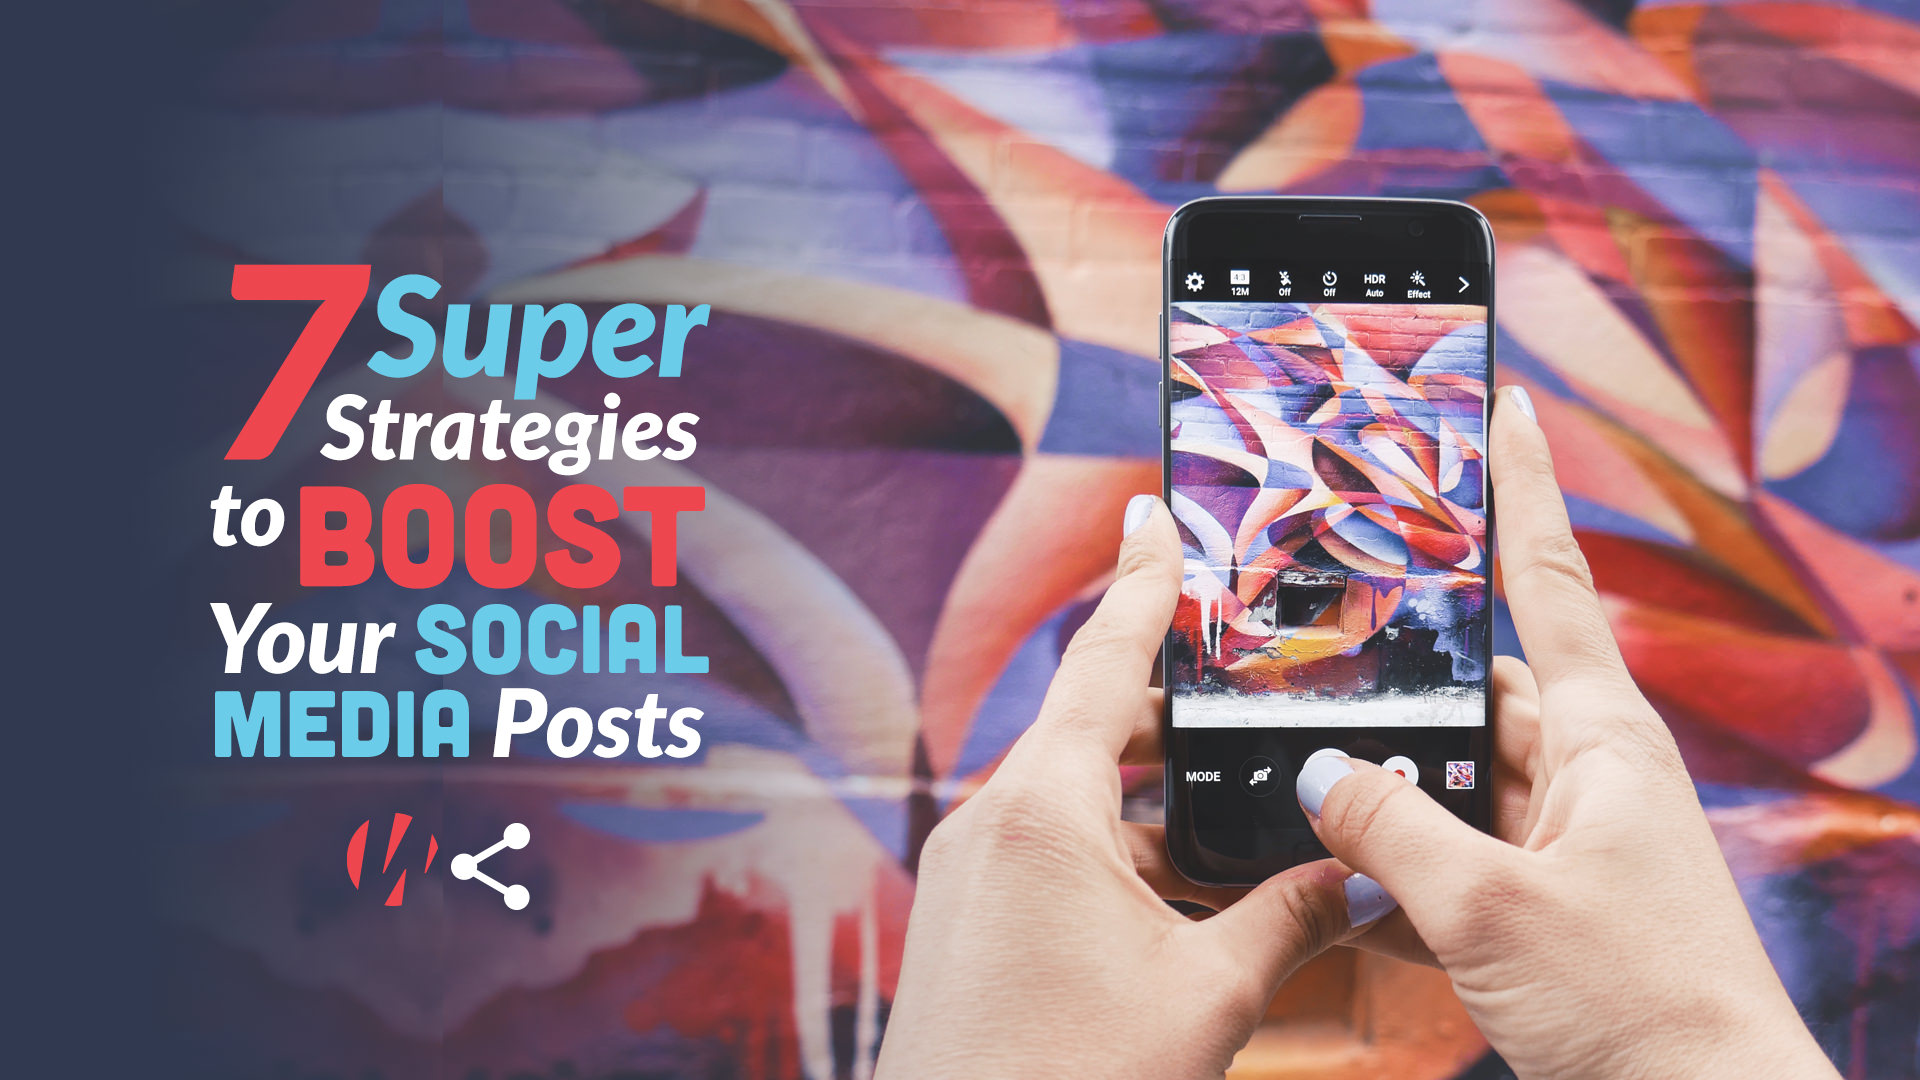 7 Super Strategies to Boost Your Social Media Posts